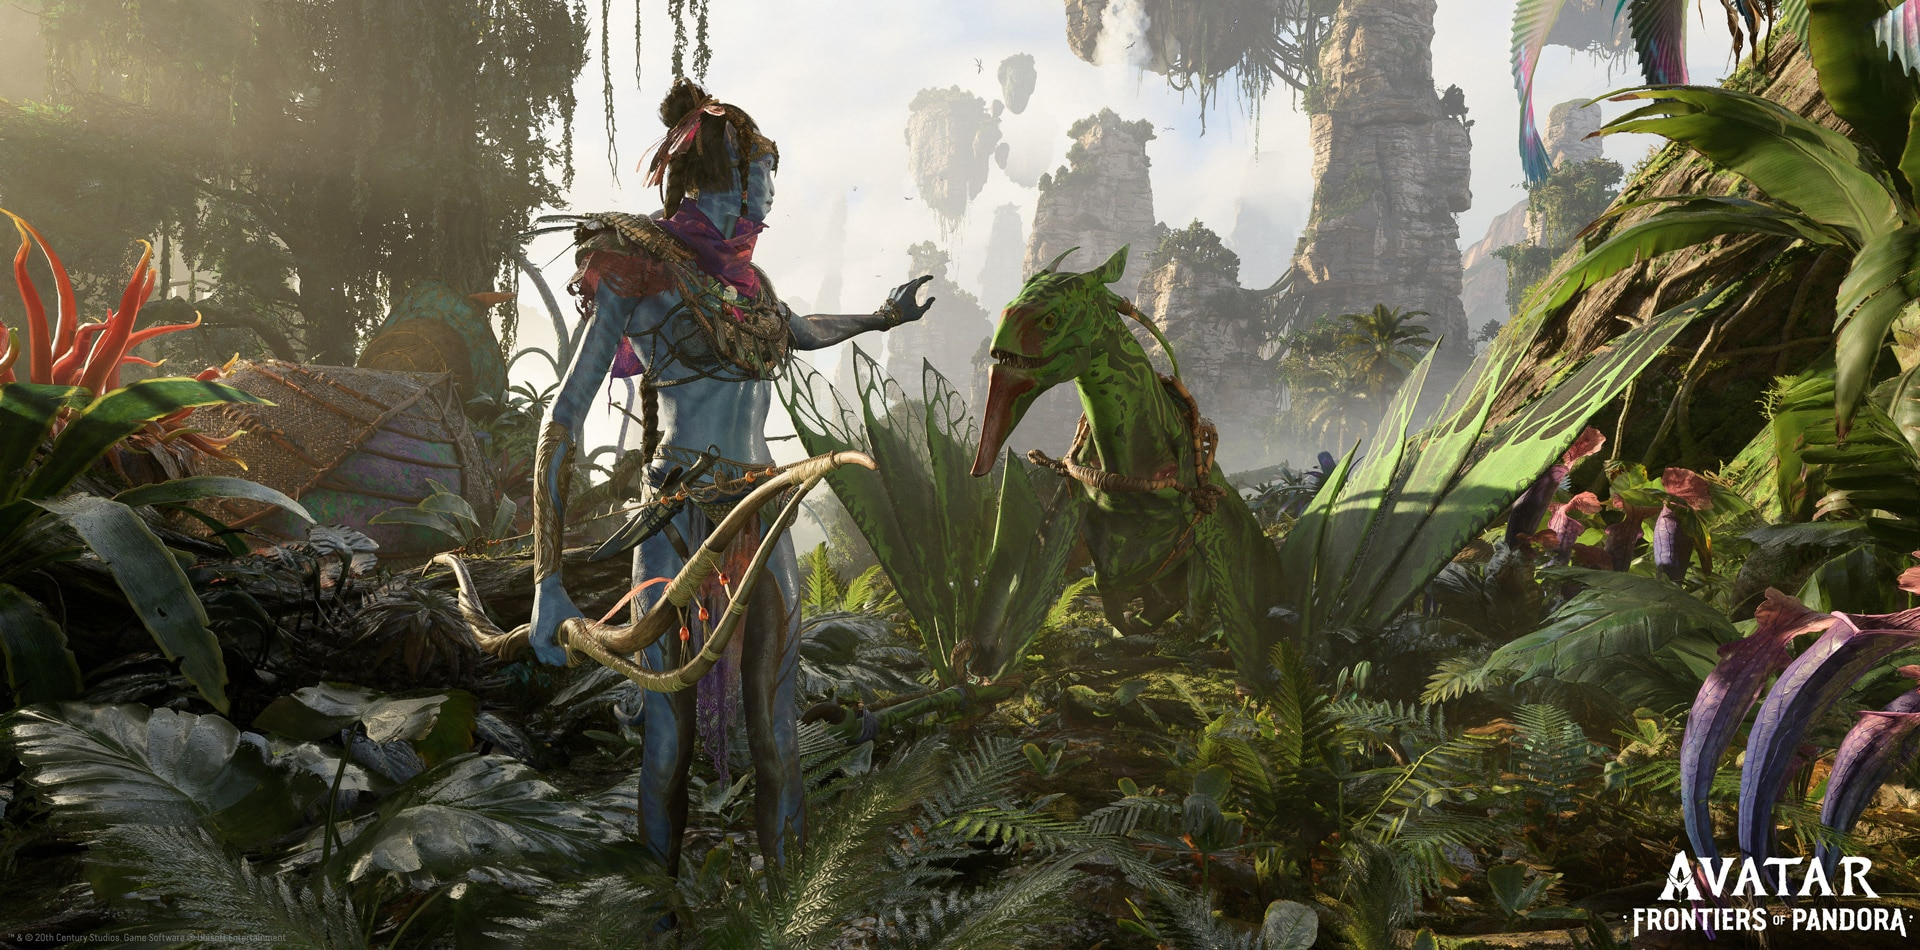 'It's Not Just the Tech, but the People' – How Avatar: Frontiers of Pandora Embraces Creativity While Pushing Boundaries of Technology - Image 2